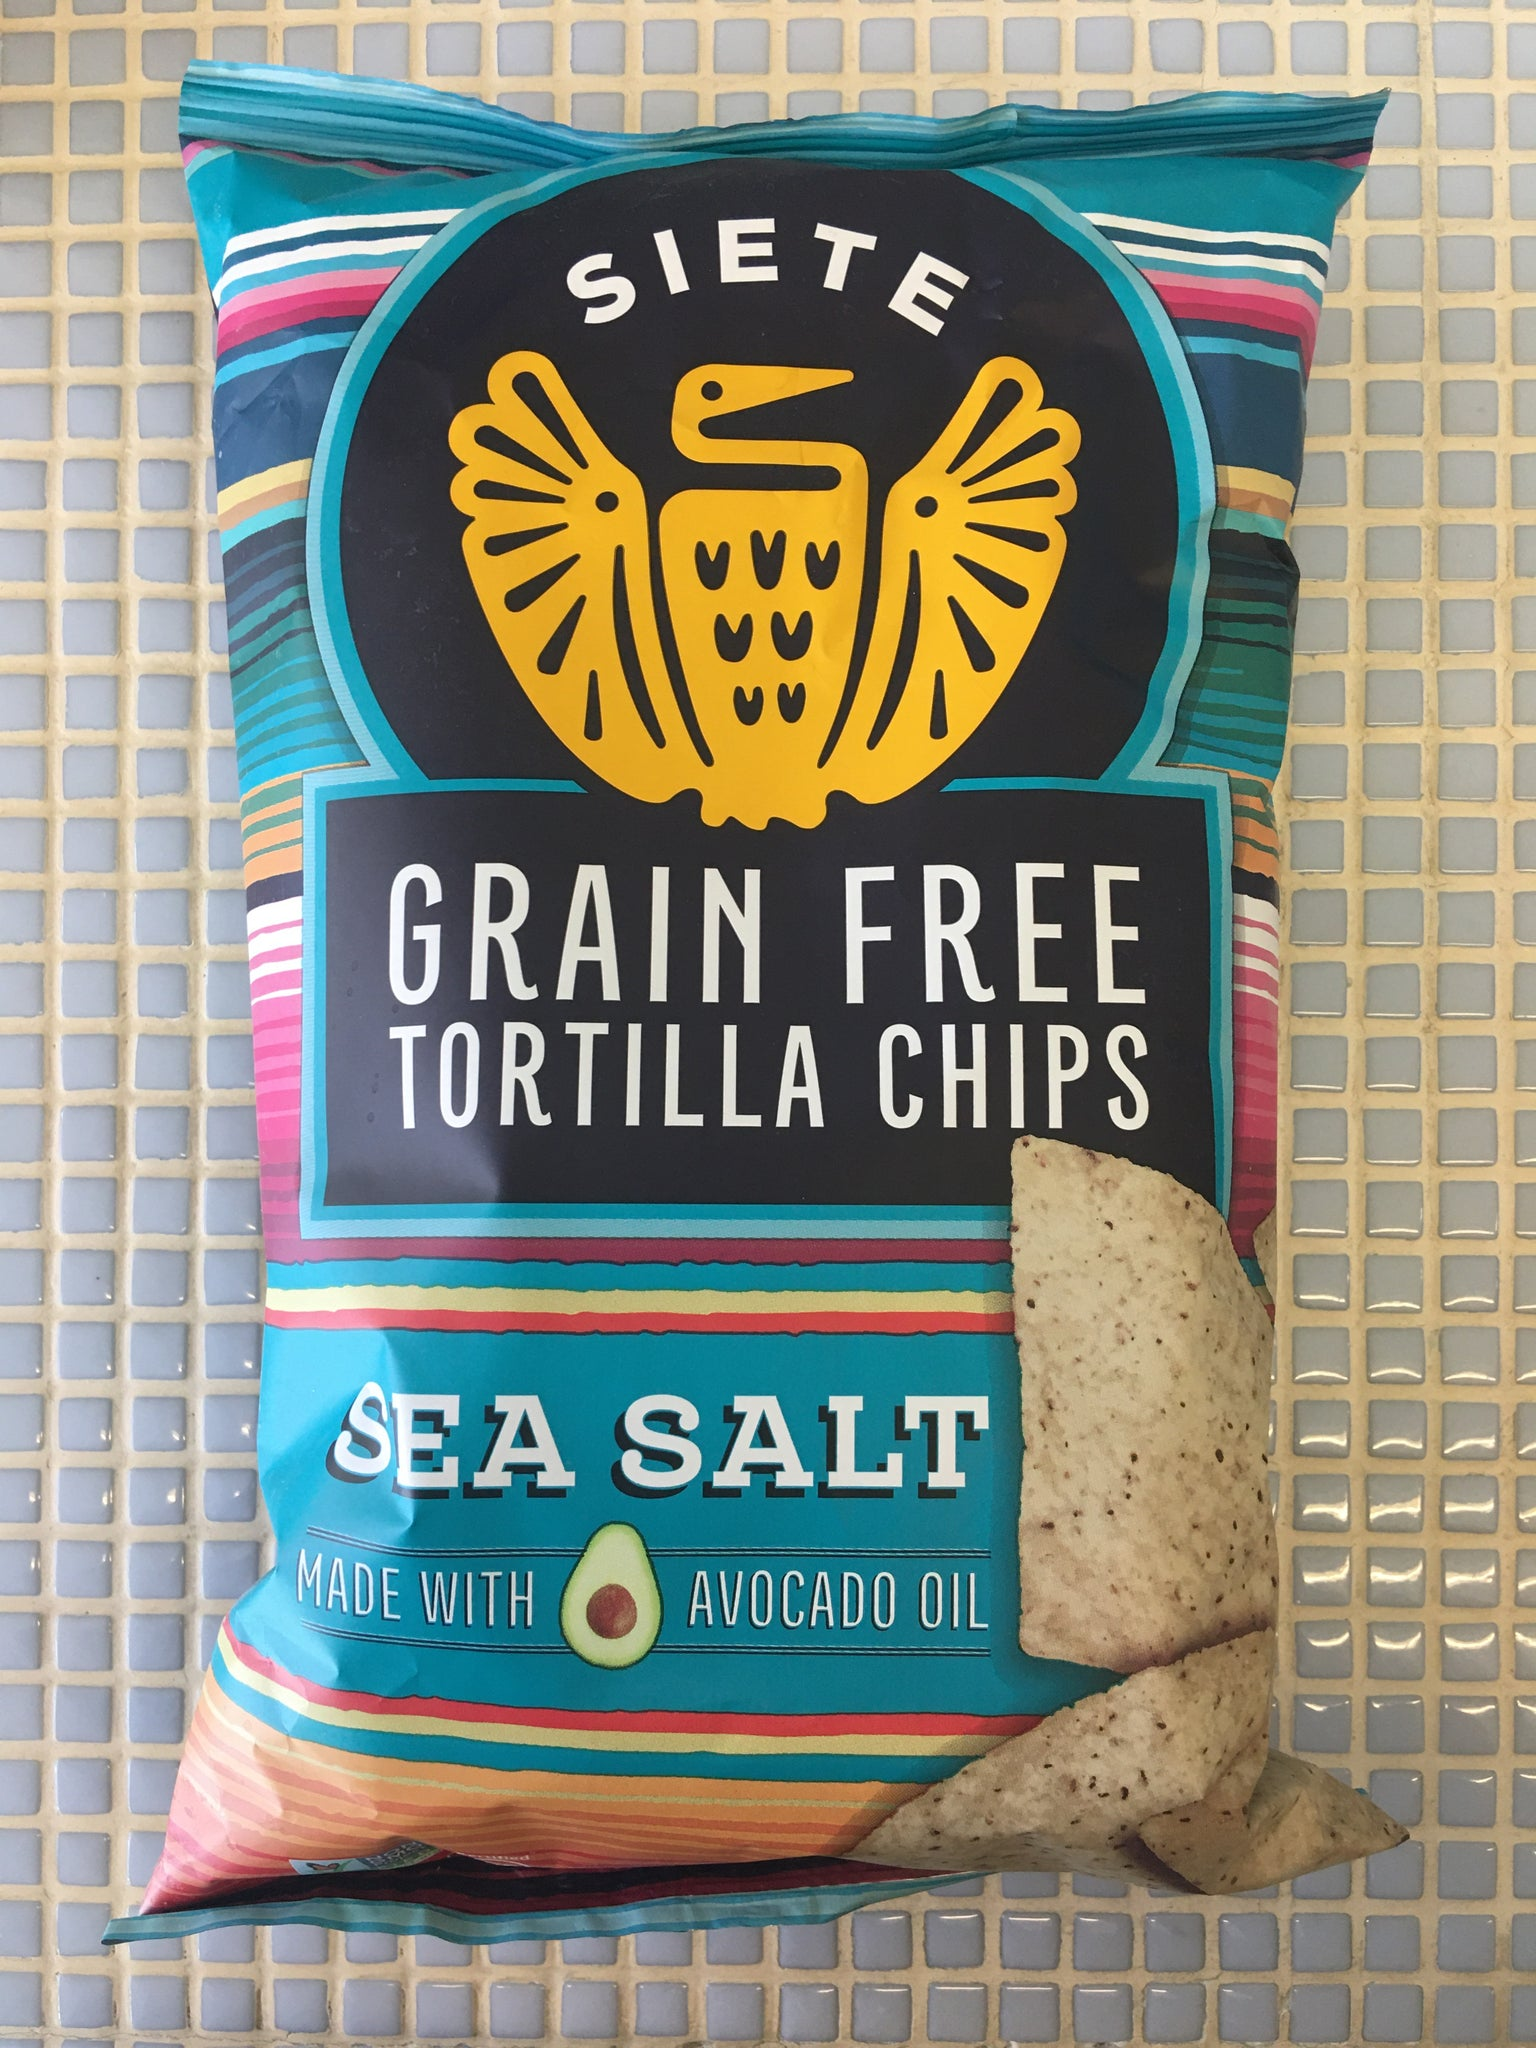 siete sea salt grain free tortilla chips